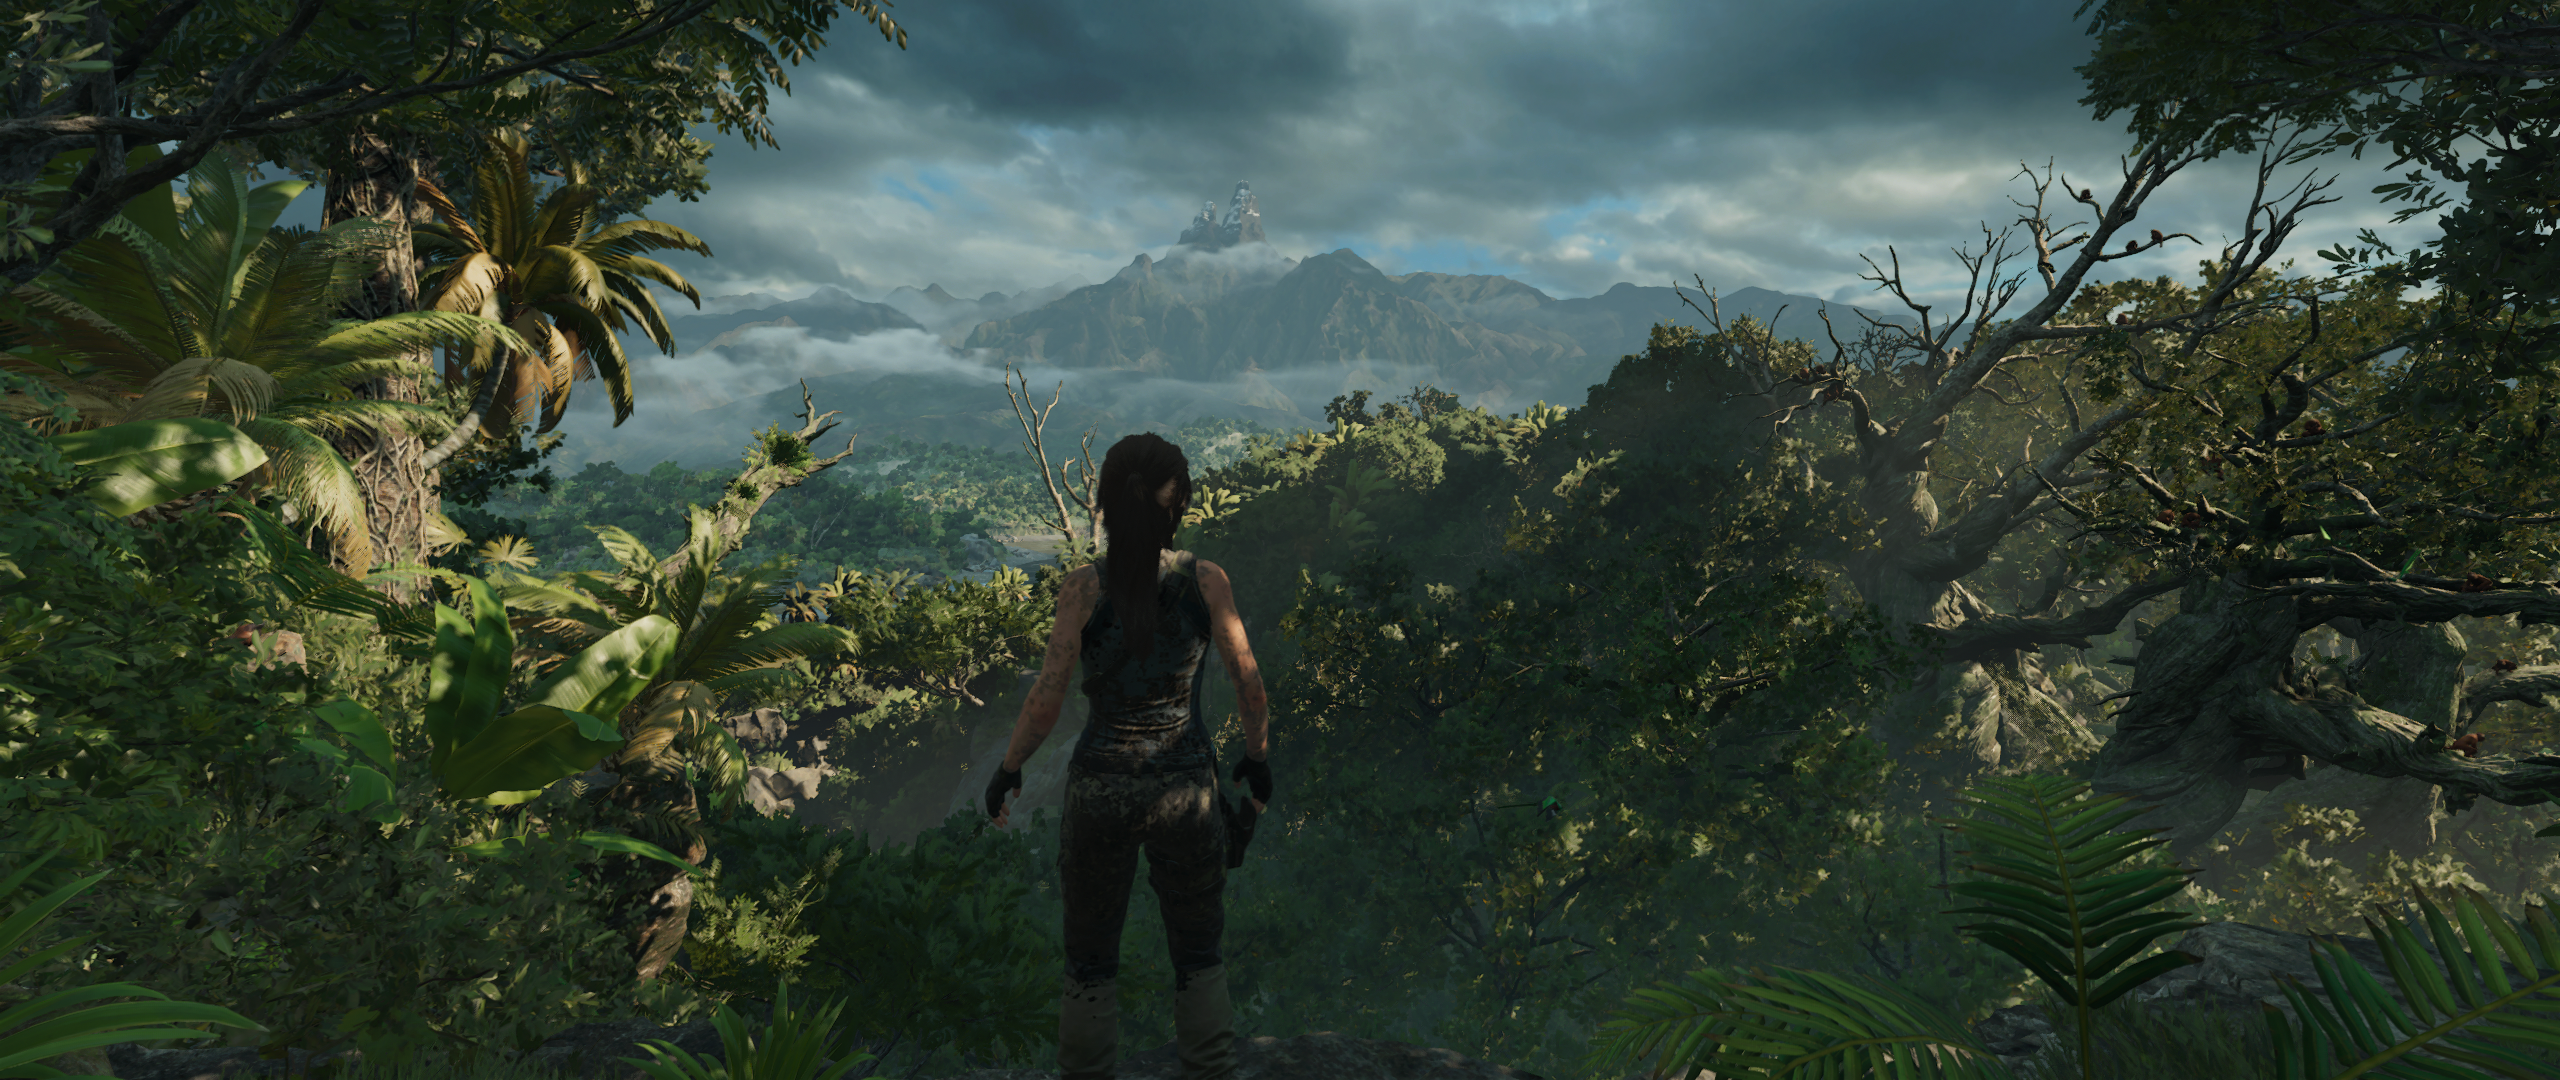 Shadow of the Tomb Raider Screenshot 2018.11.18 - 18.20.15.66.png - Shadow of the Tomb Raider